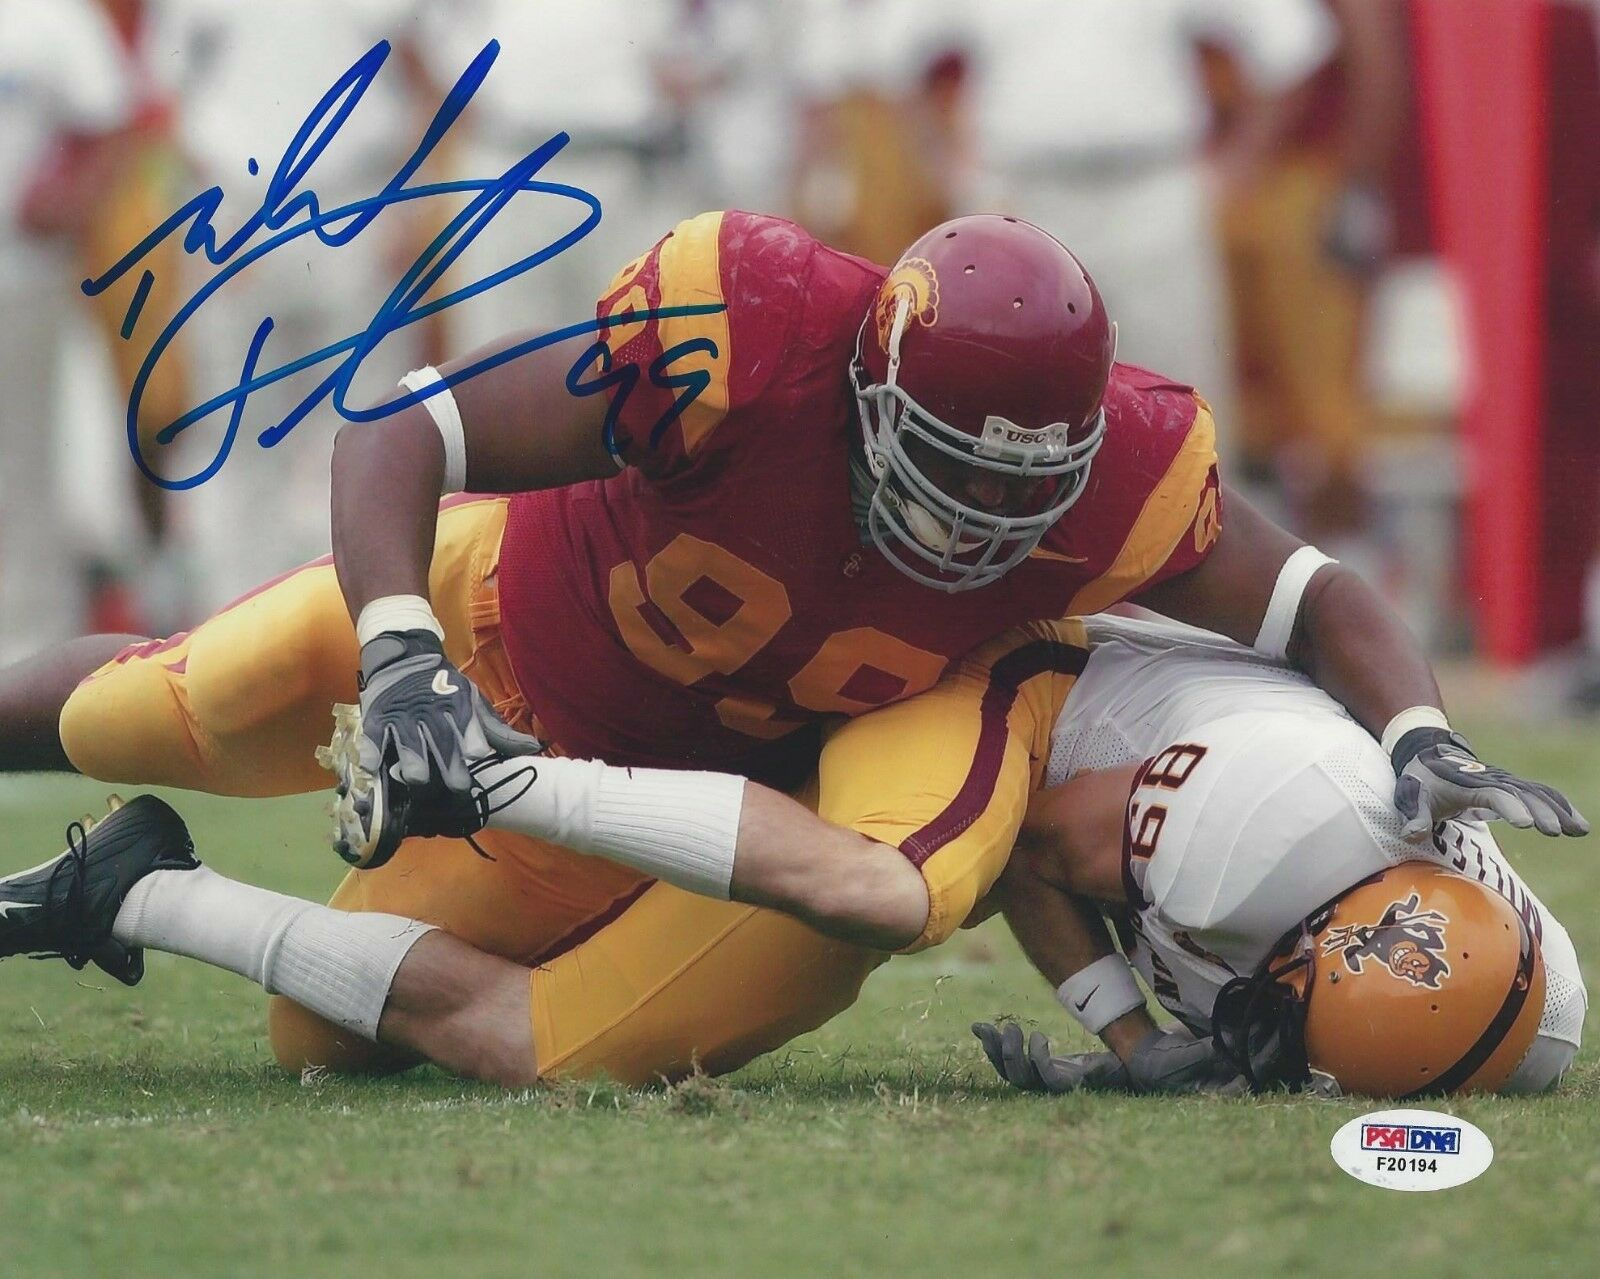 Mike Patterson USC Trojans signed 8x10 photo PSA/DNA # F20194